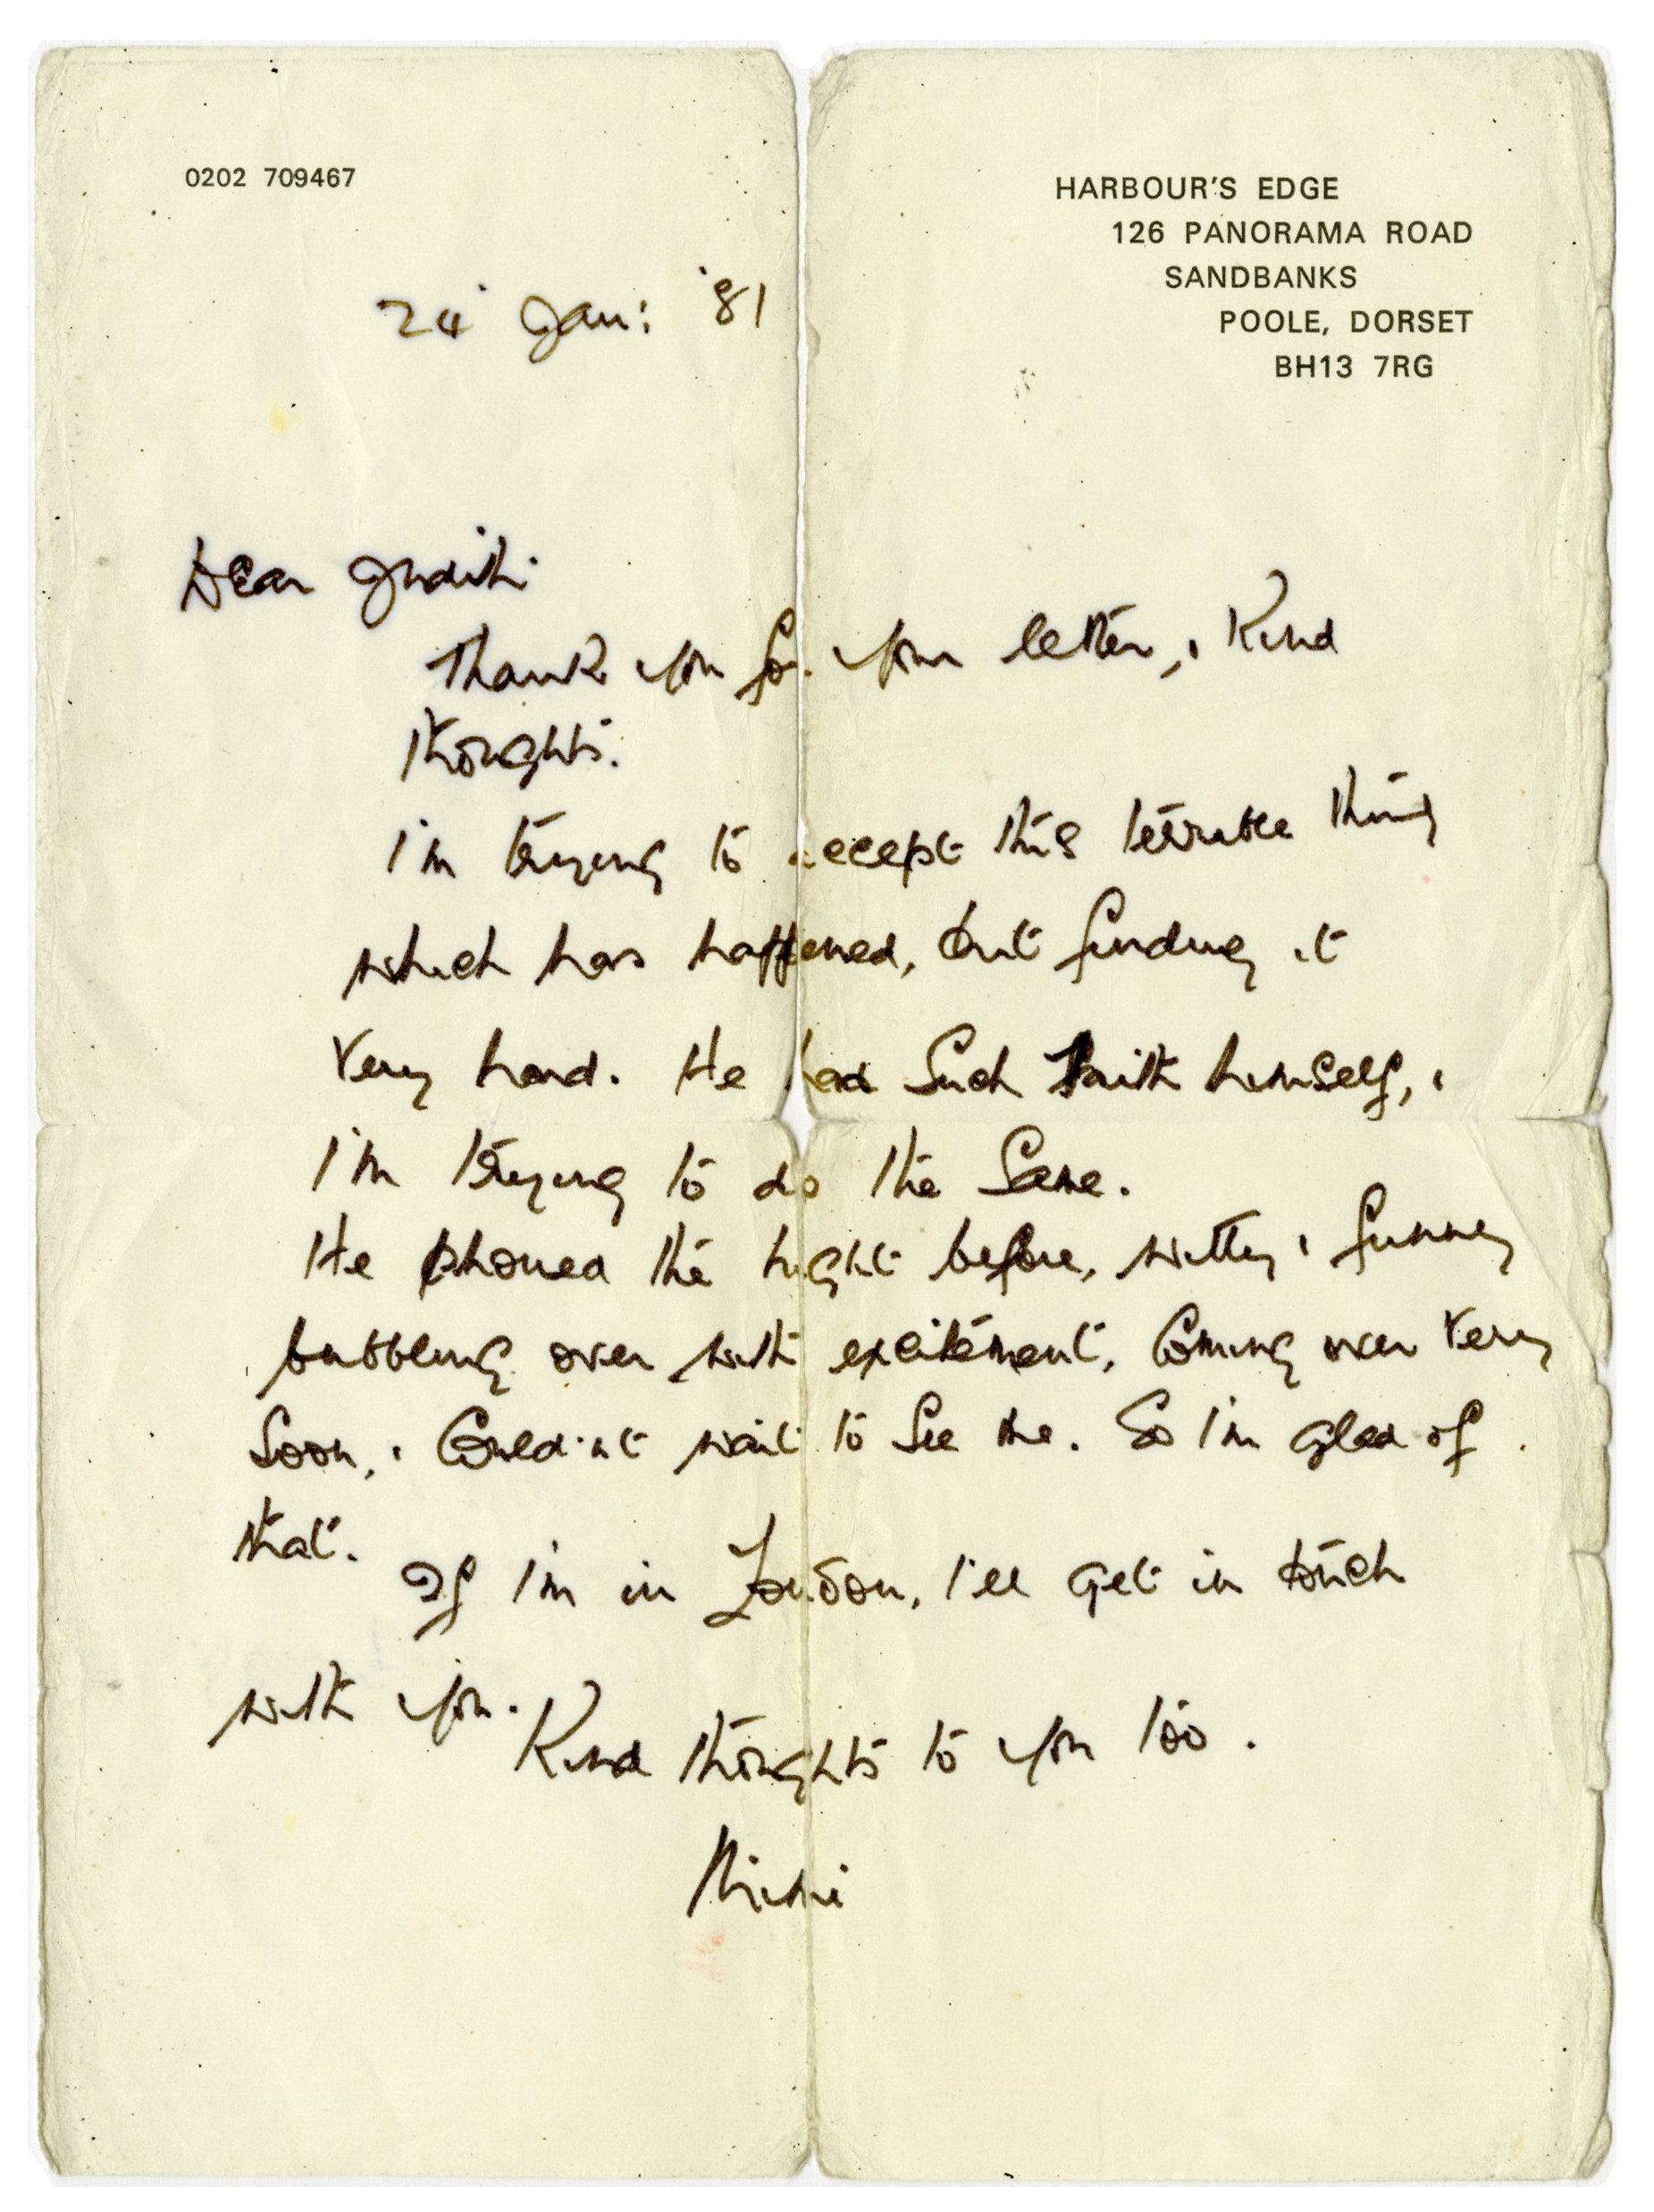 Letter from John Lennon's Aunt Mimi after his death